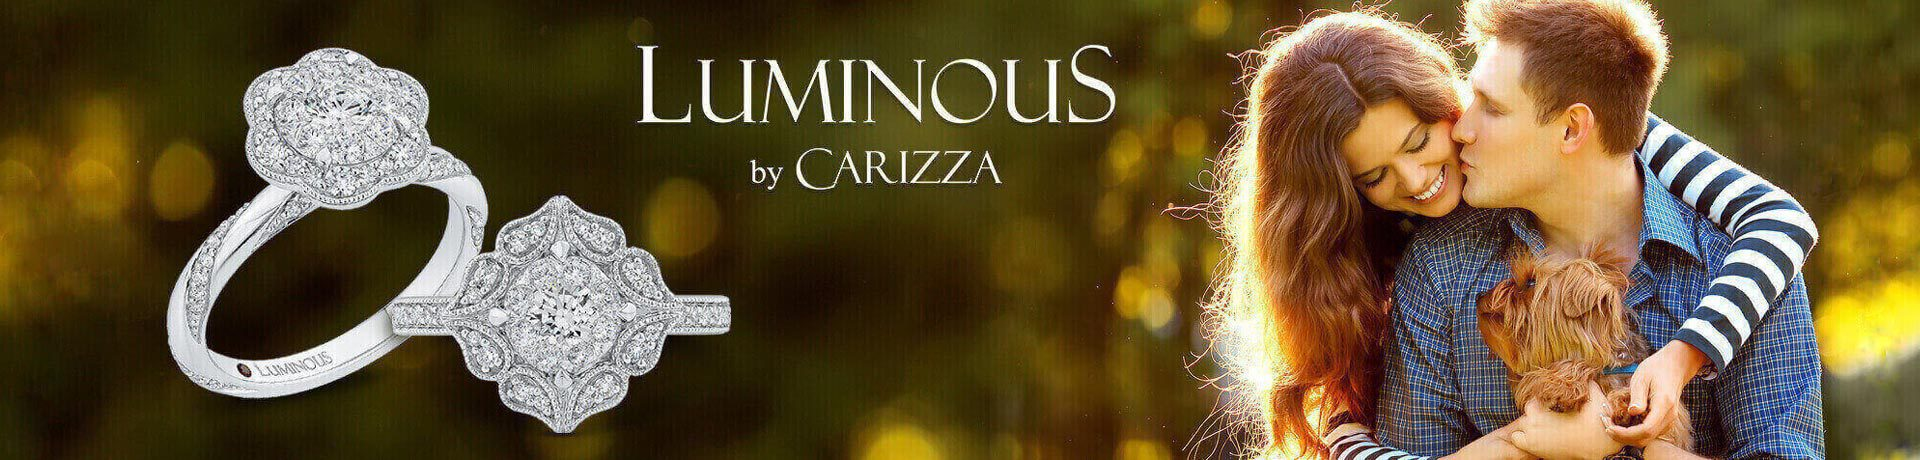 Carizza Luminous